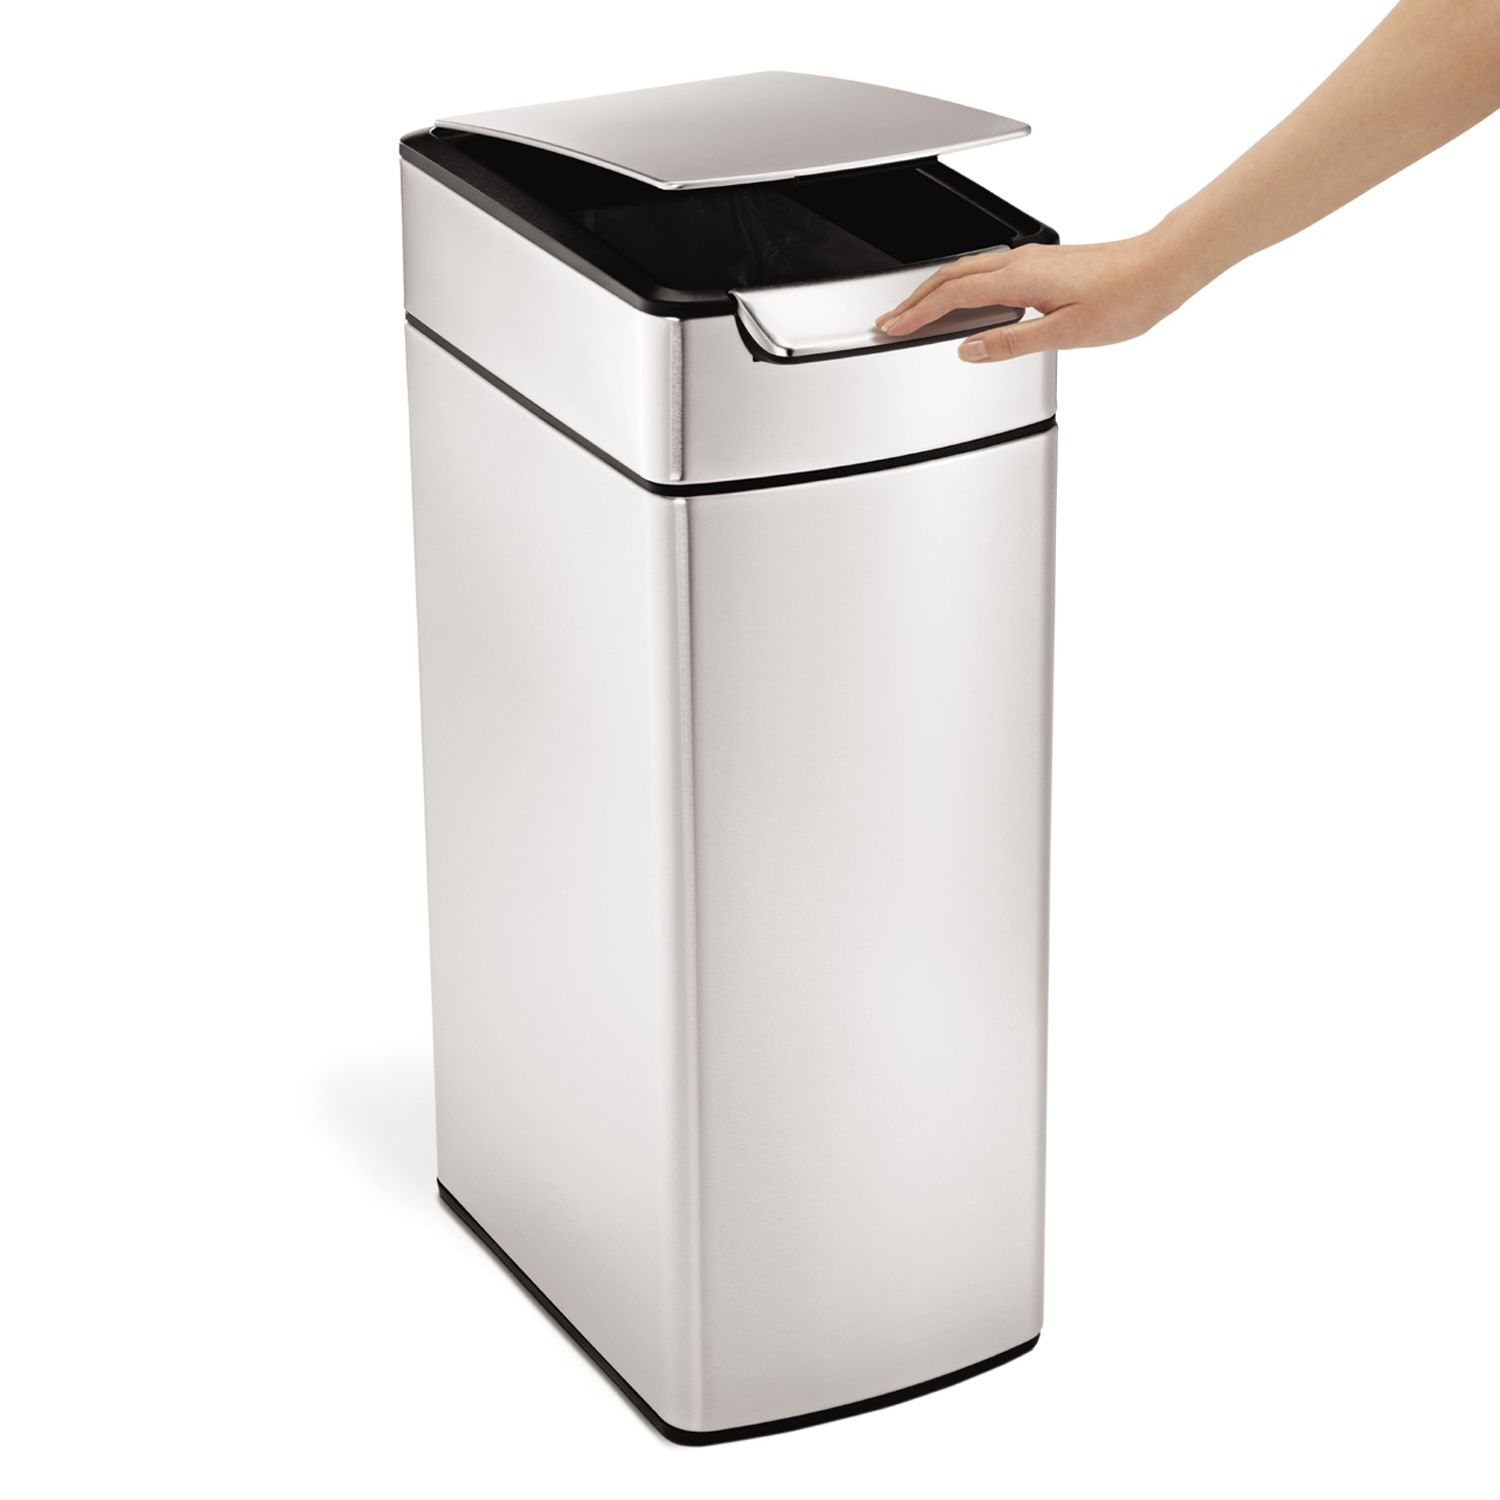 Trash Cans Storage & Organization, Storage & Cleaning | Kohl\'s